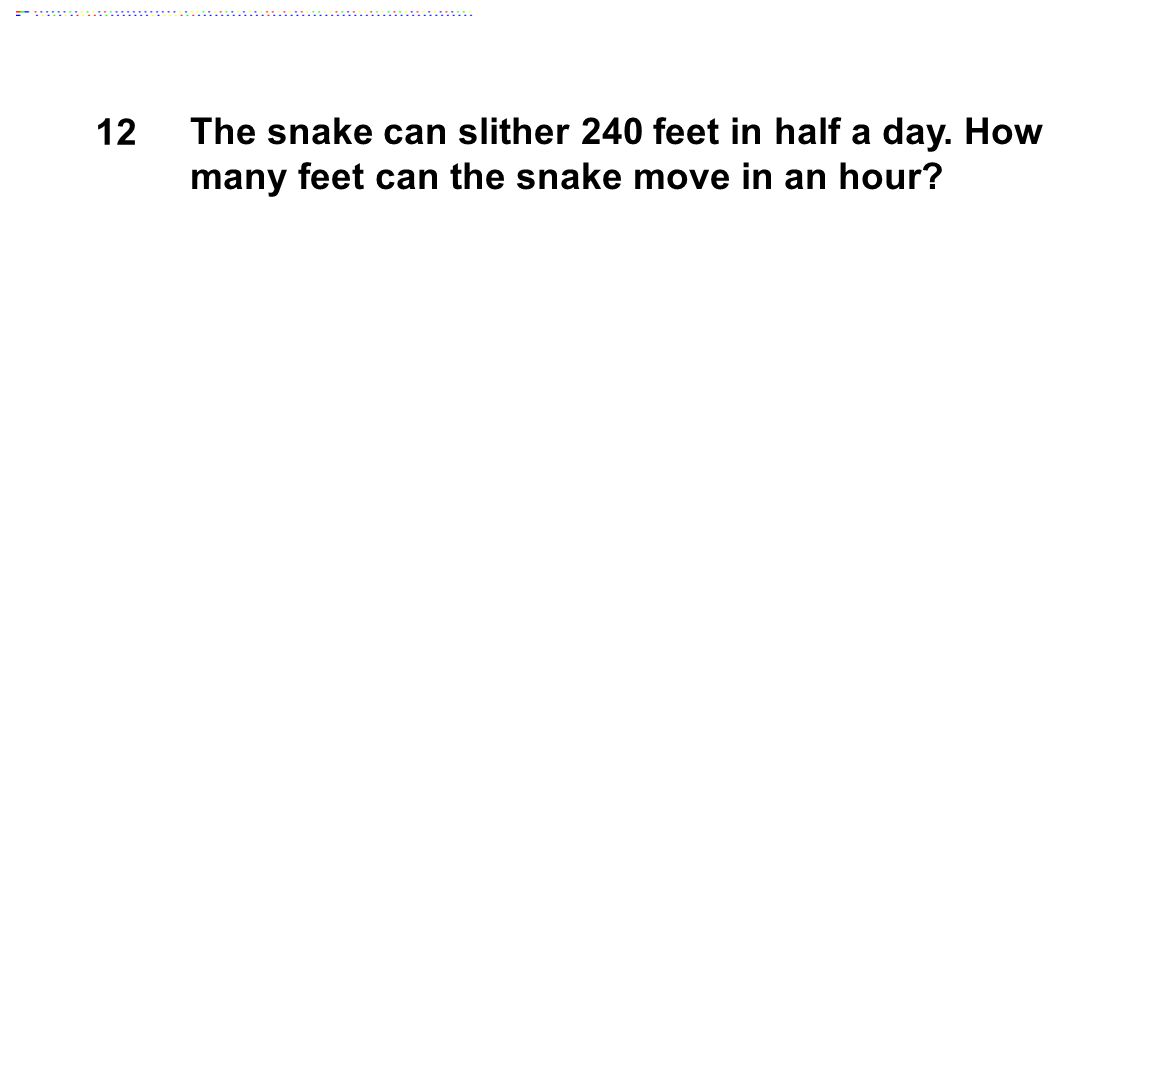 12 The snake can slither 240 feet in half a day. How many feet can the snake move in an hour.